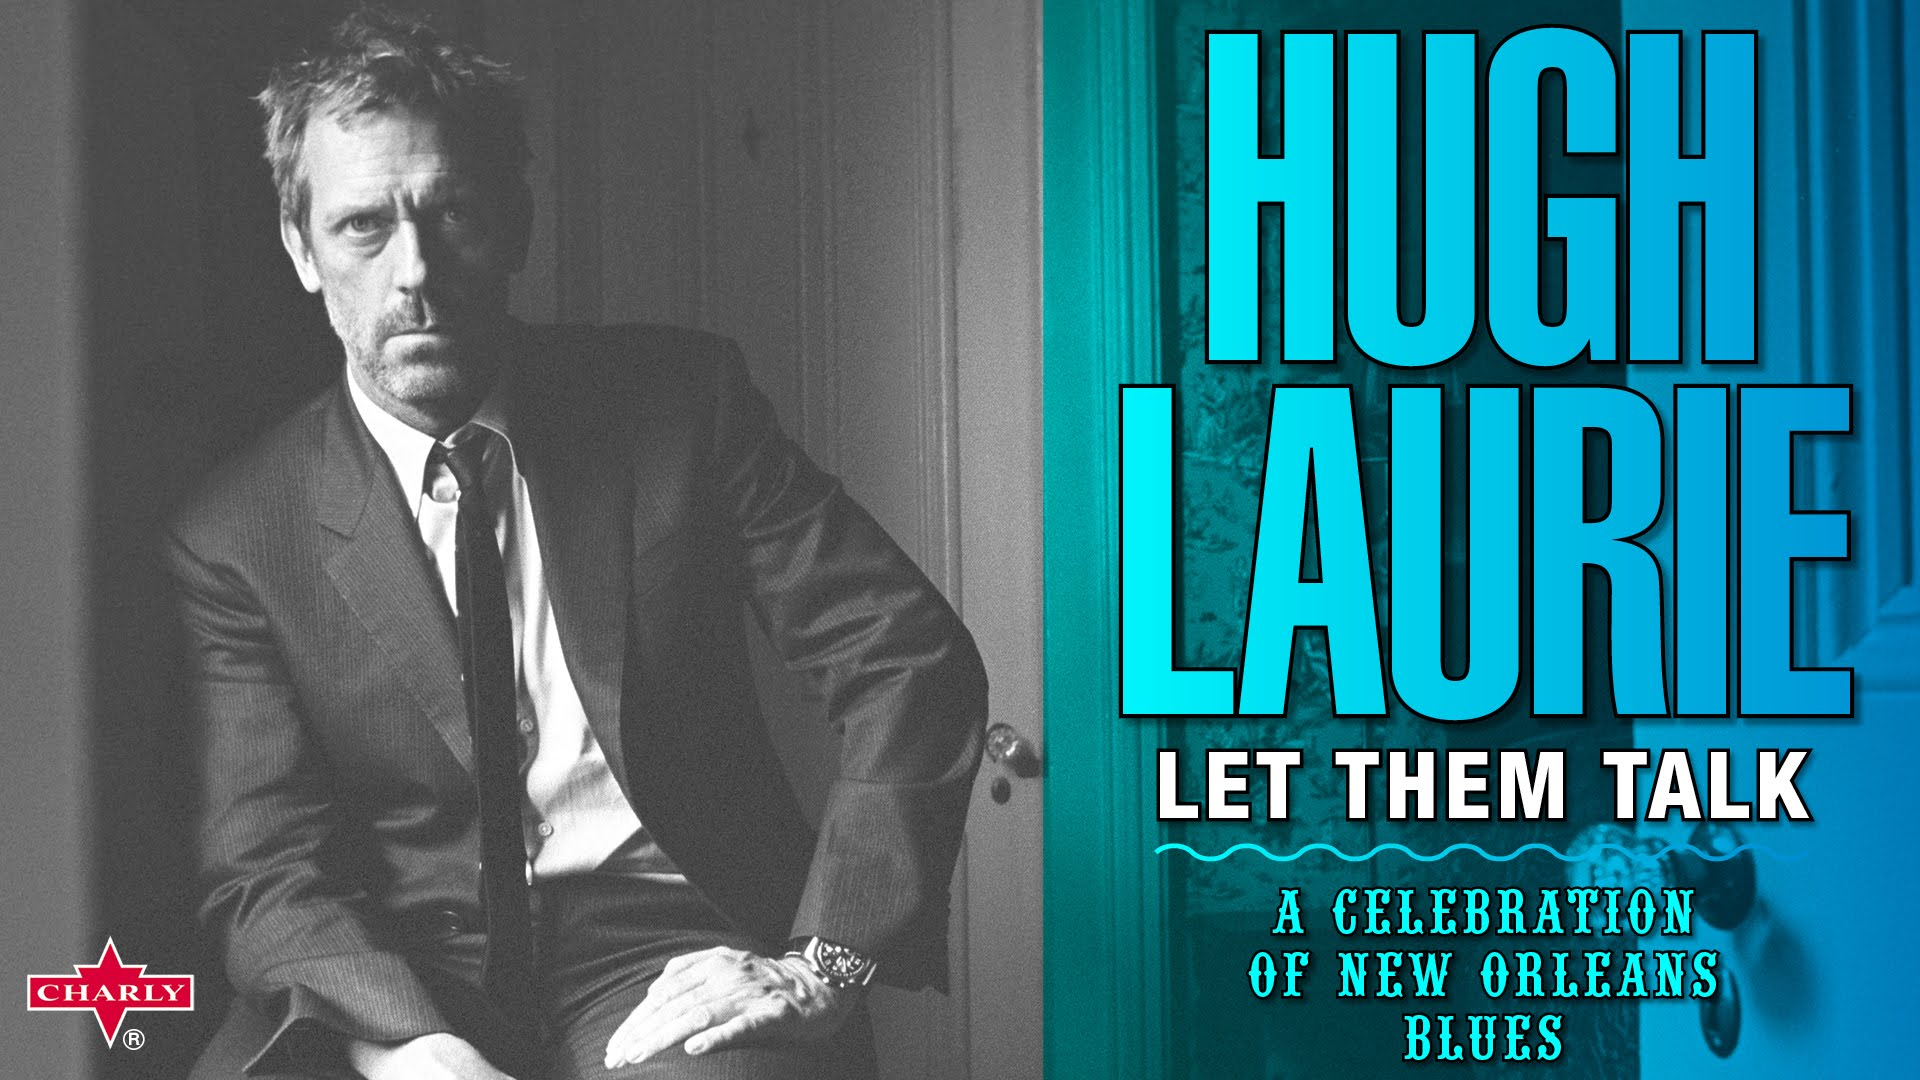 Hugh Laurie - Saint James Infirmary (Let Them Talk, A Celebration of New Orleans Blues